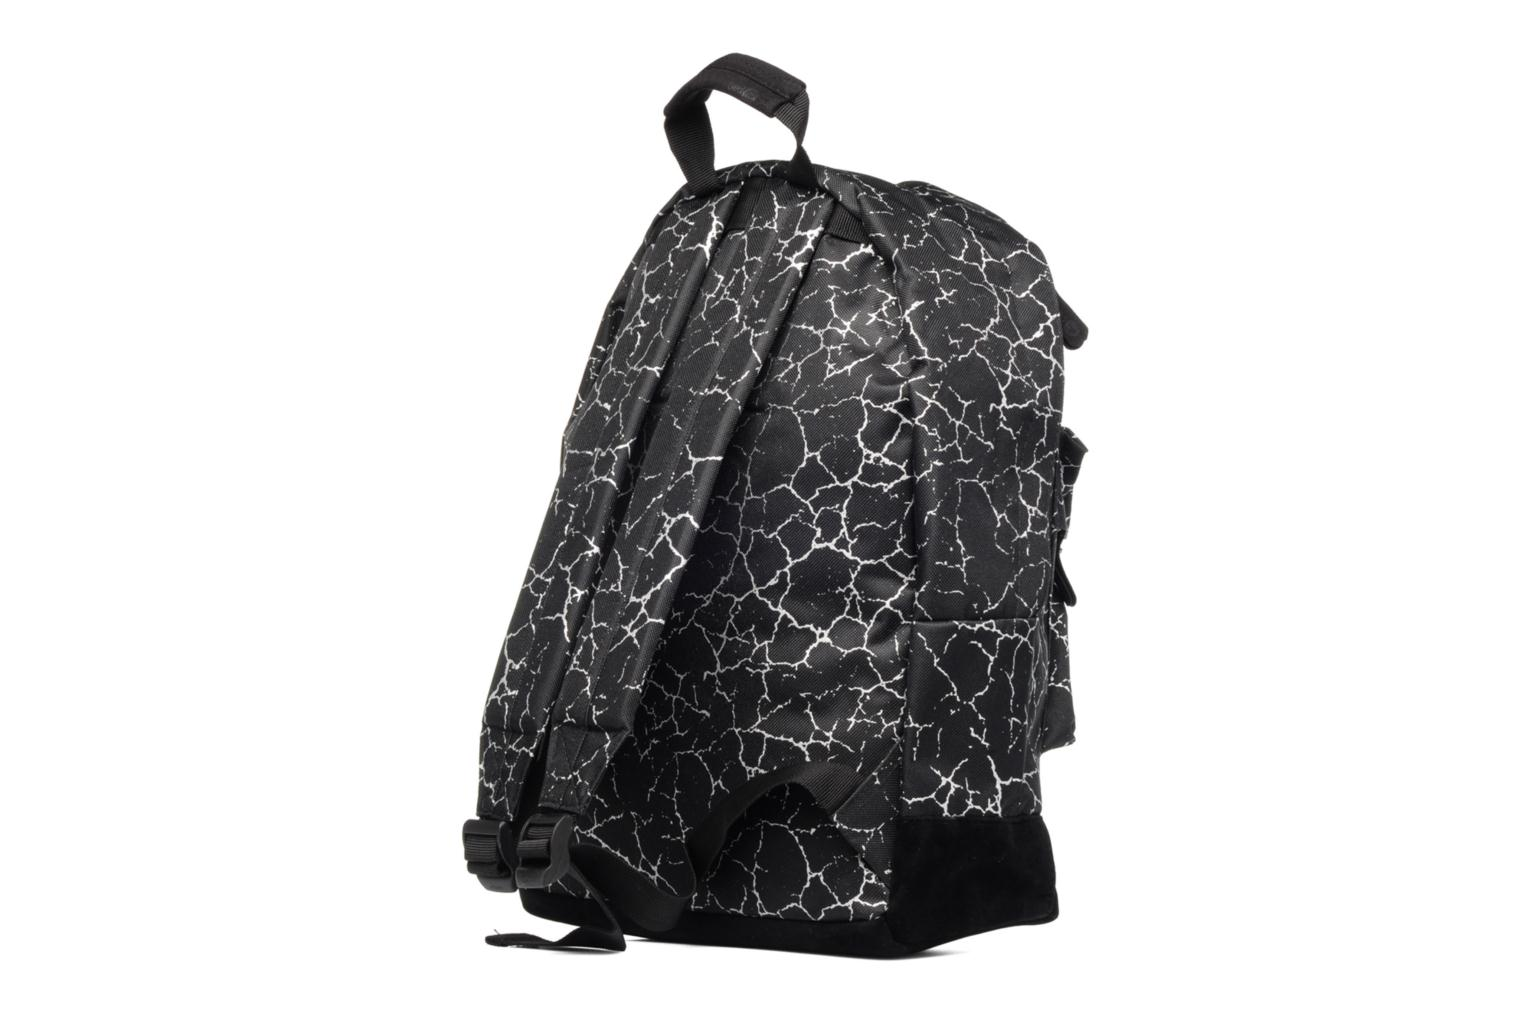 Custom Backpack Black/silver Cracked